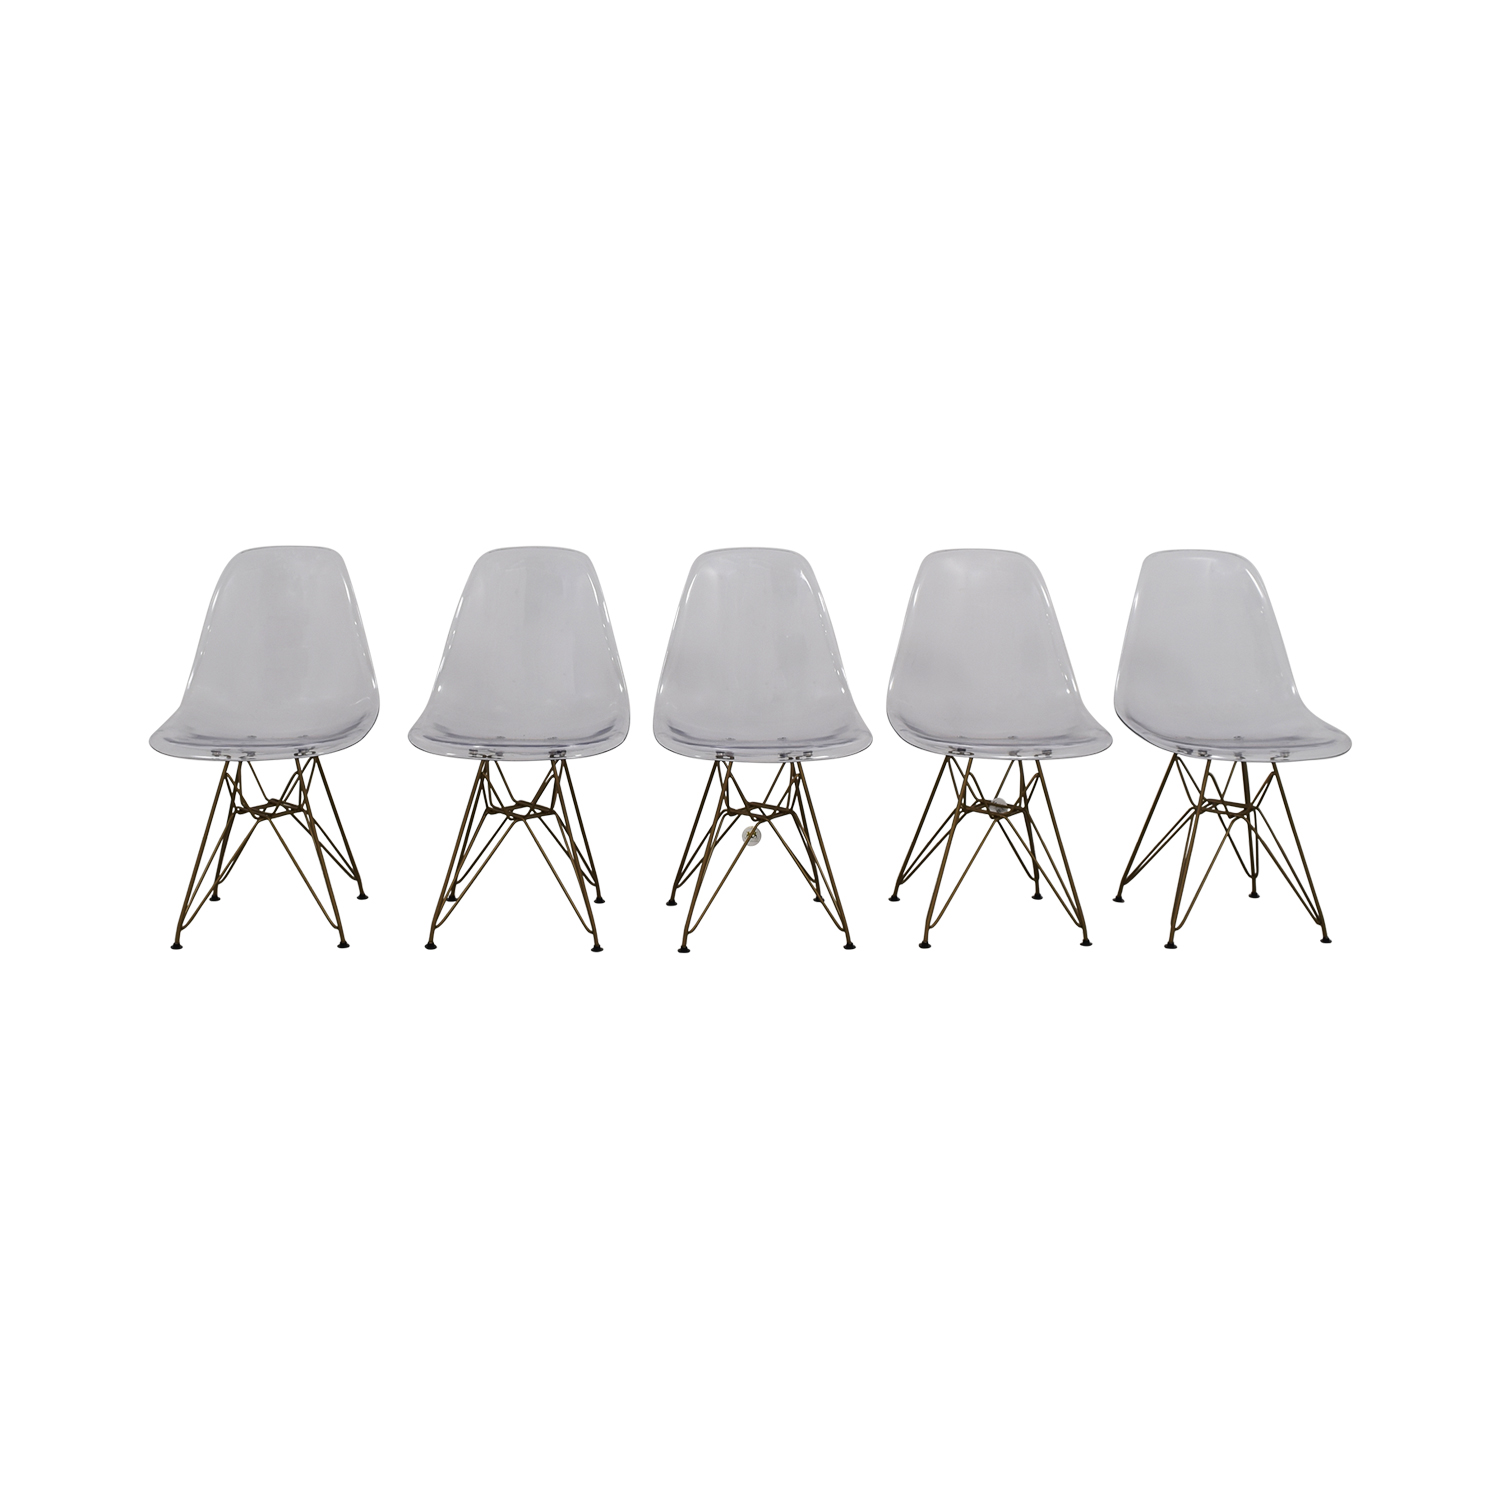 Junia Junia Ghost Chairs price